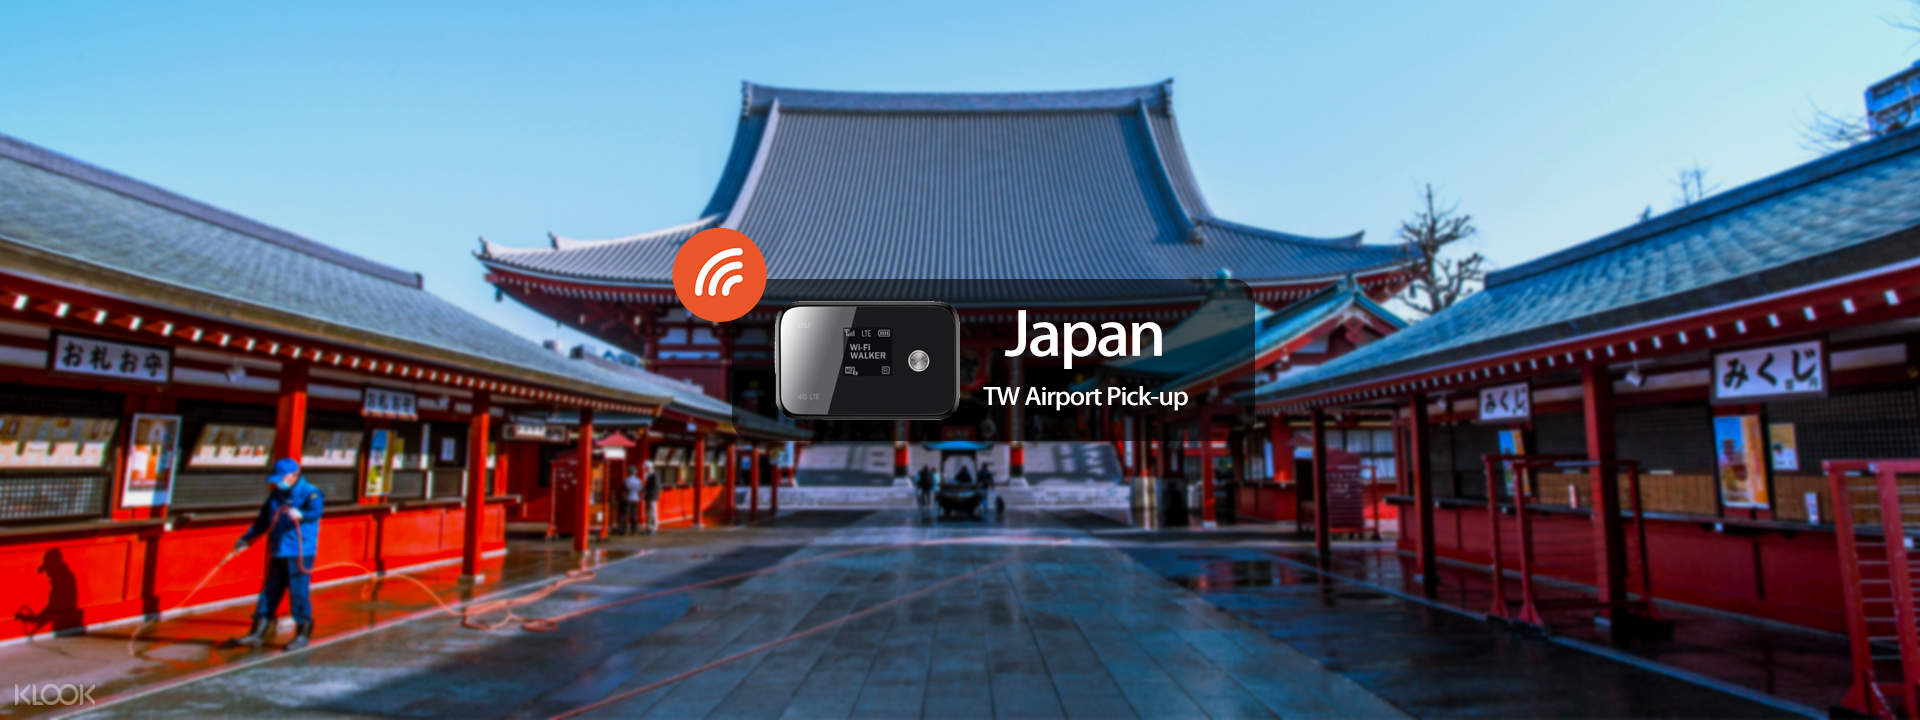 4G LTE WiFi (TW Airport Pick Up) for Japan - Klook